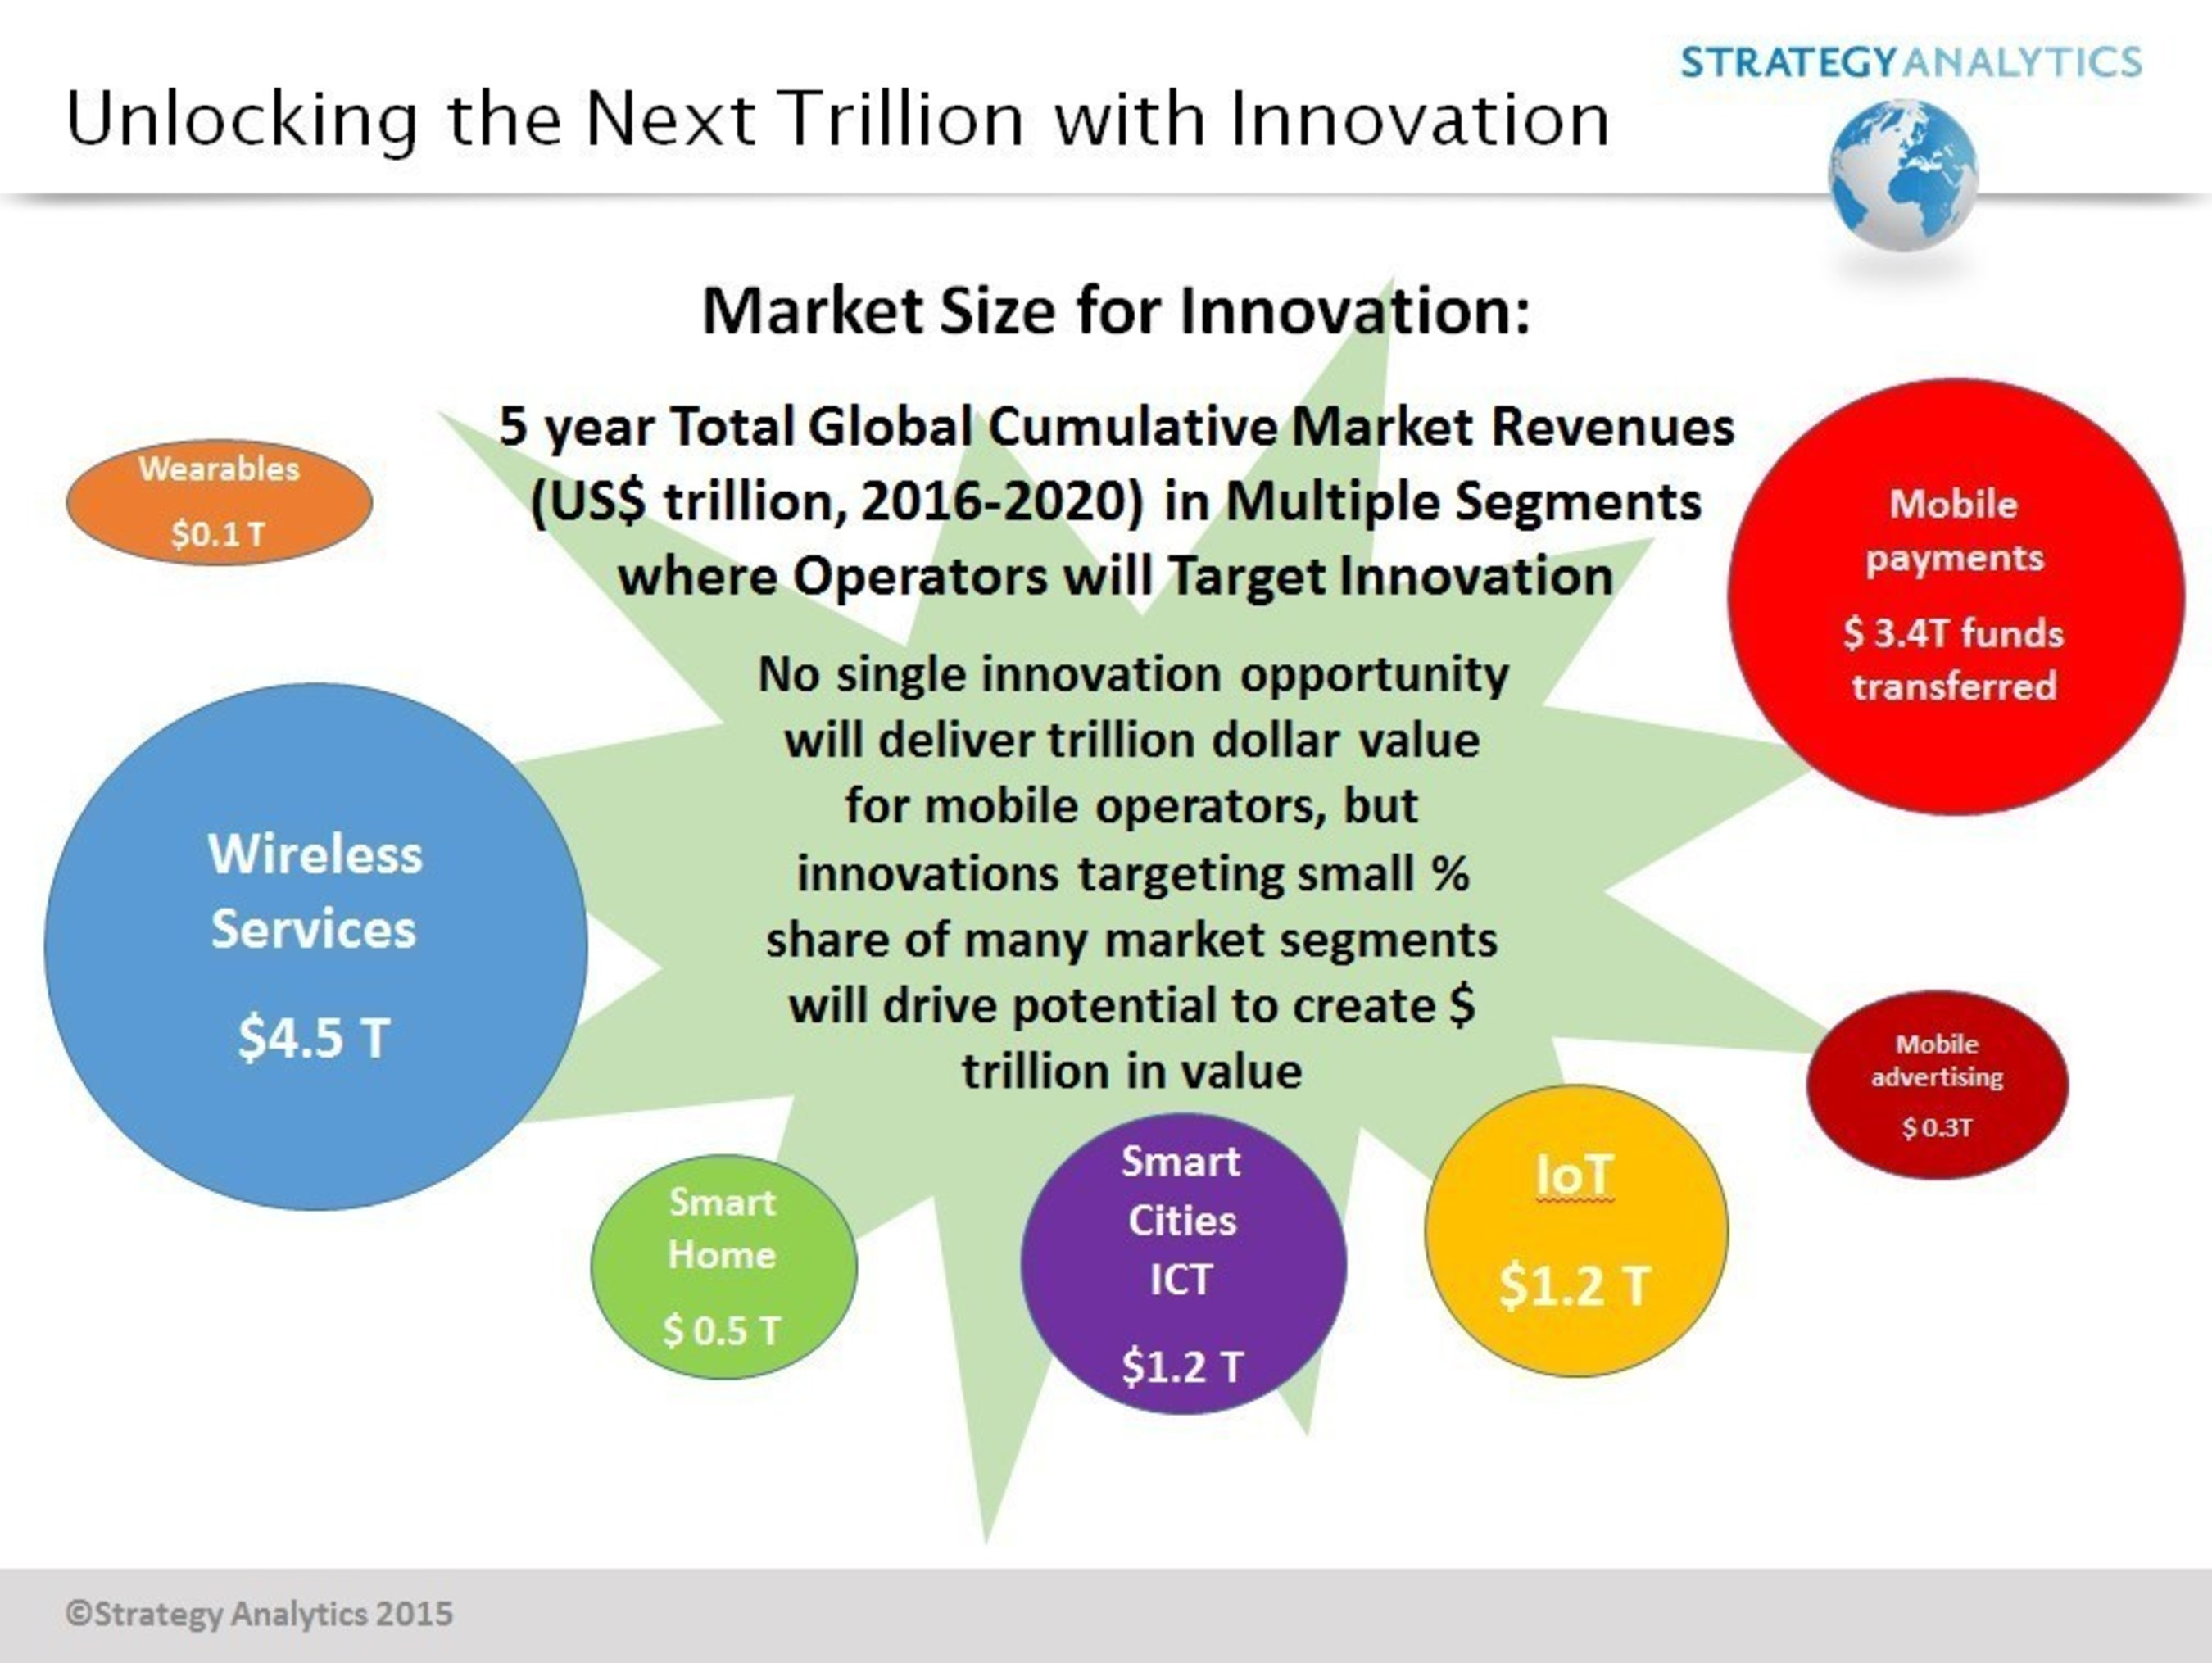 Mobile Operators Targeting Trillions in Growth through Innovation, says Strategy Analytics